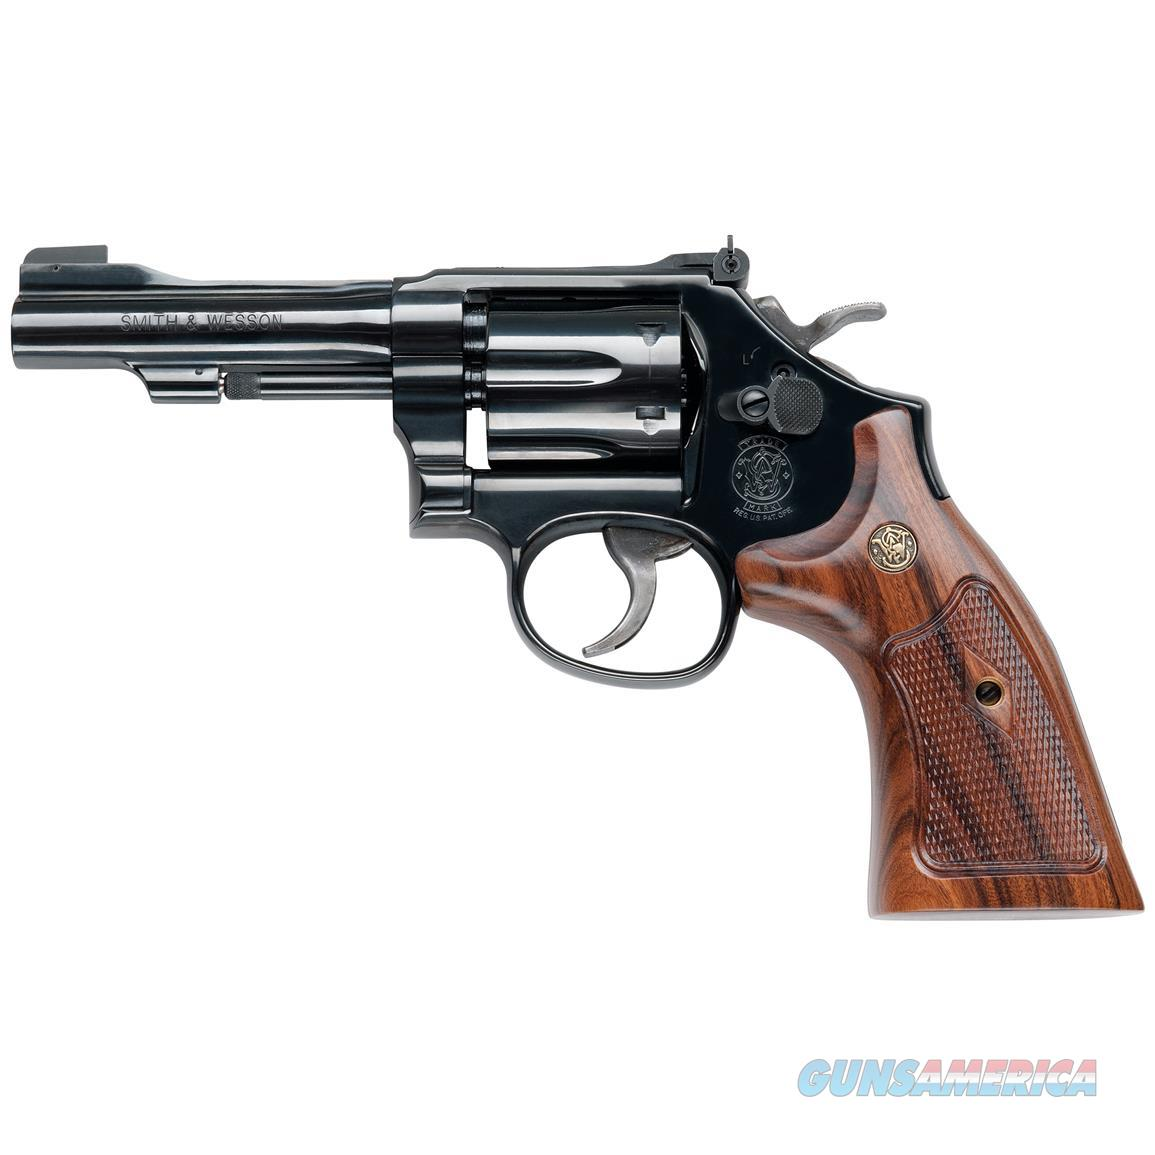 SMITH & WESSON CLASSIC MODEL 48 22 MAGNUM 4 INCH BLUE NEW IN BOX  Guns > Pistols > Smith & Wesson Revolvers > Full Frame Revolver